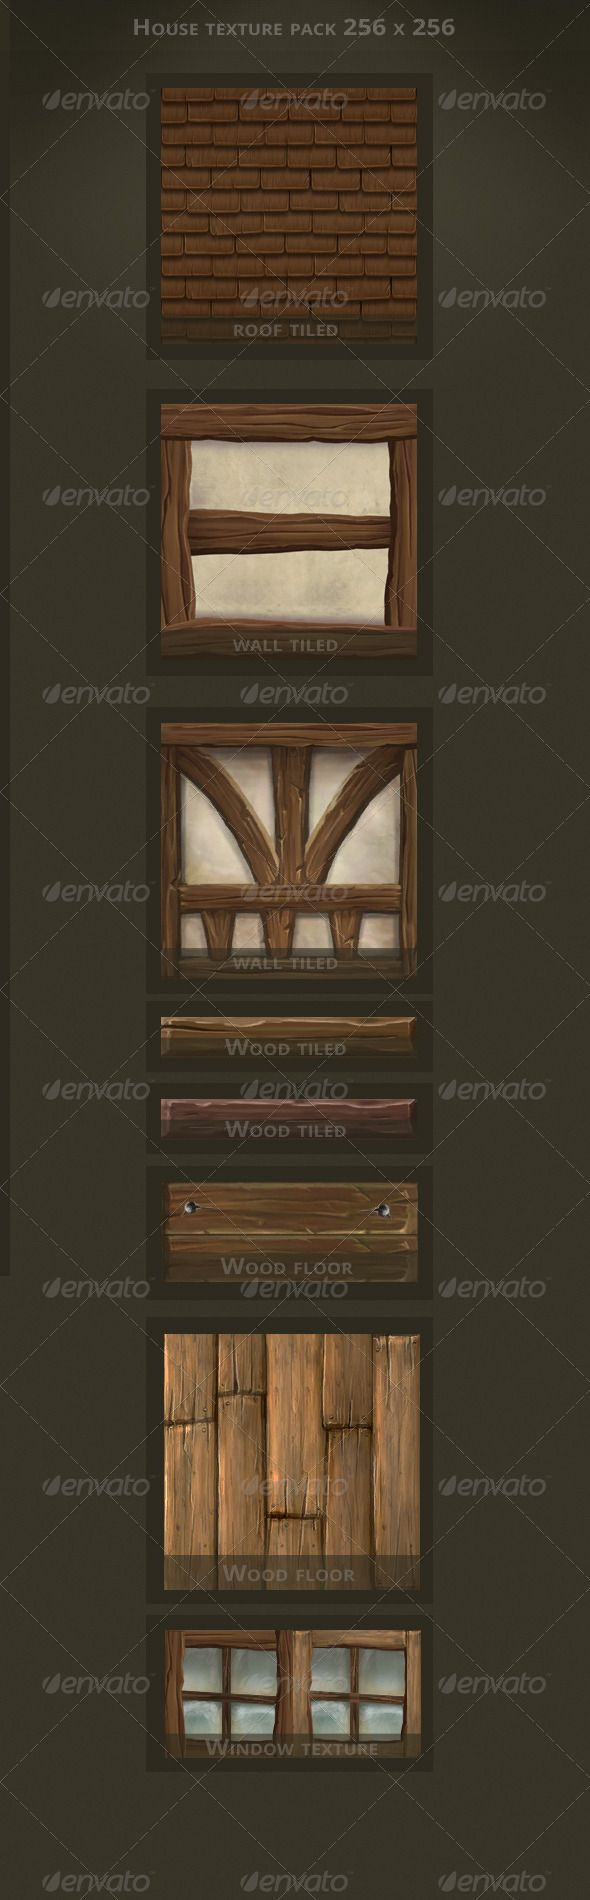 Hand Painted House Textures